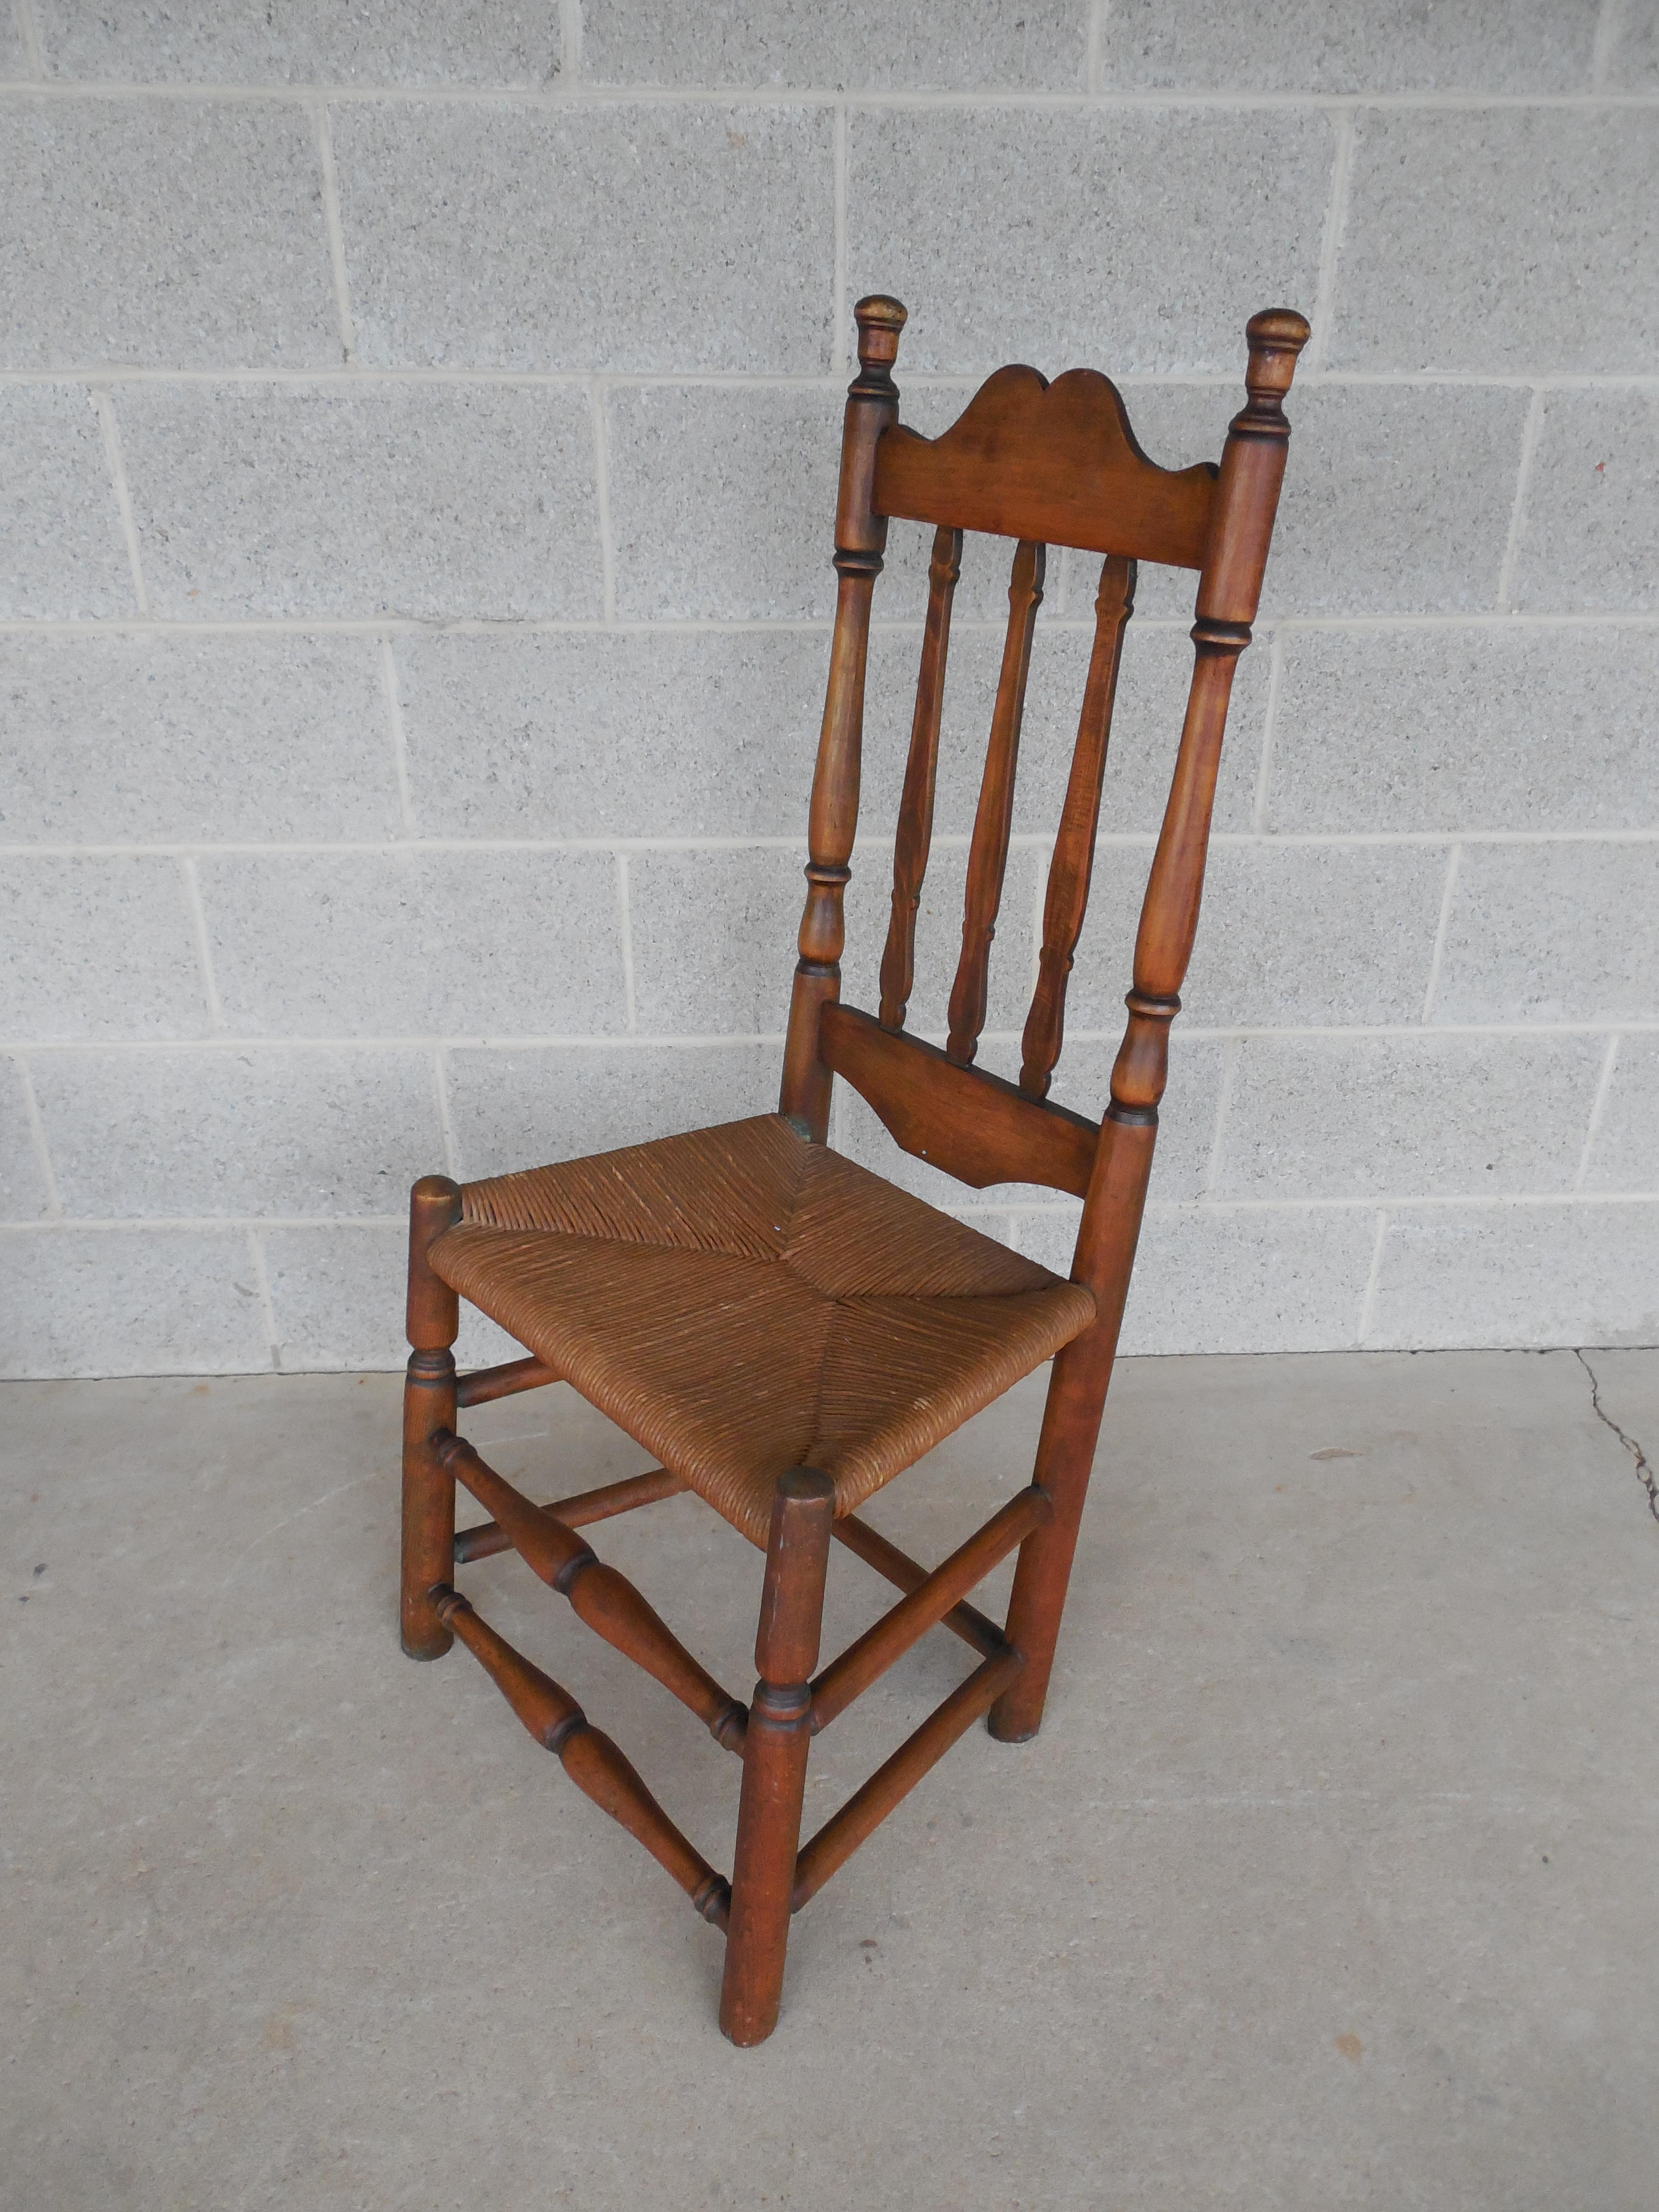 Ordinaire Set Of 6 Antique Turned Windsor Rush Bottom Chairs   Image 9 Of 12